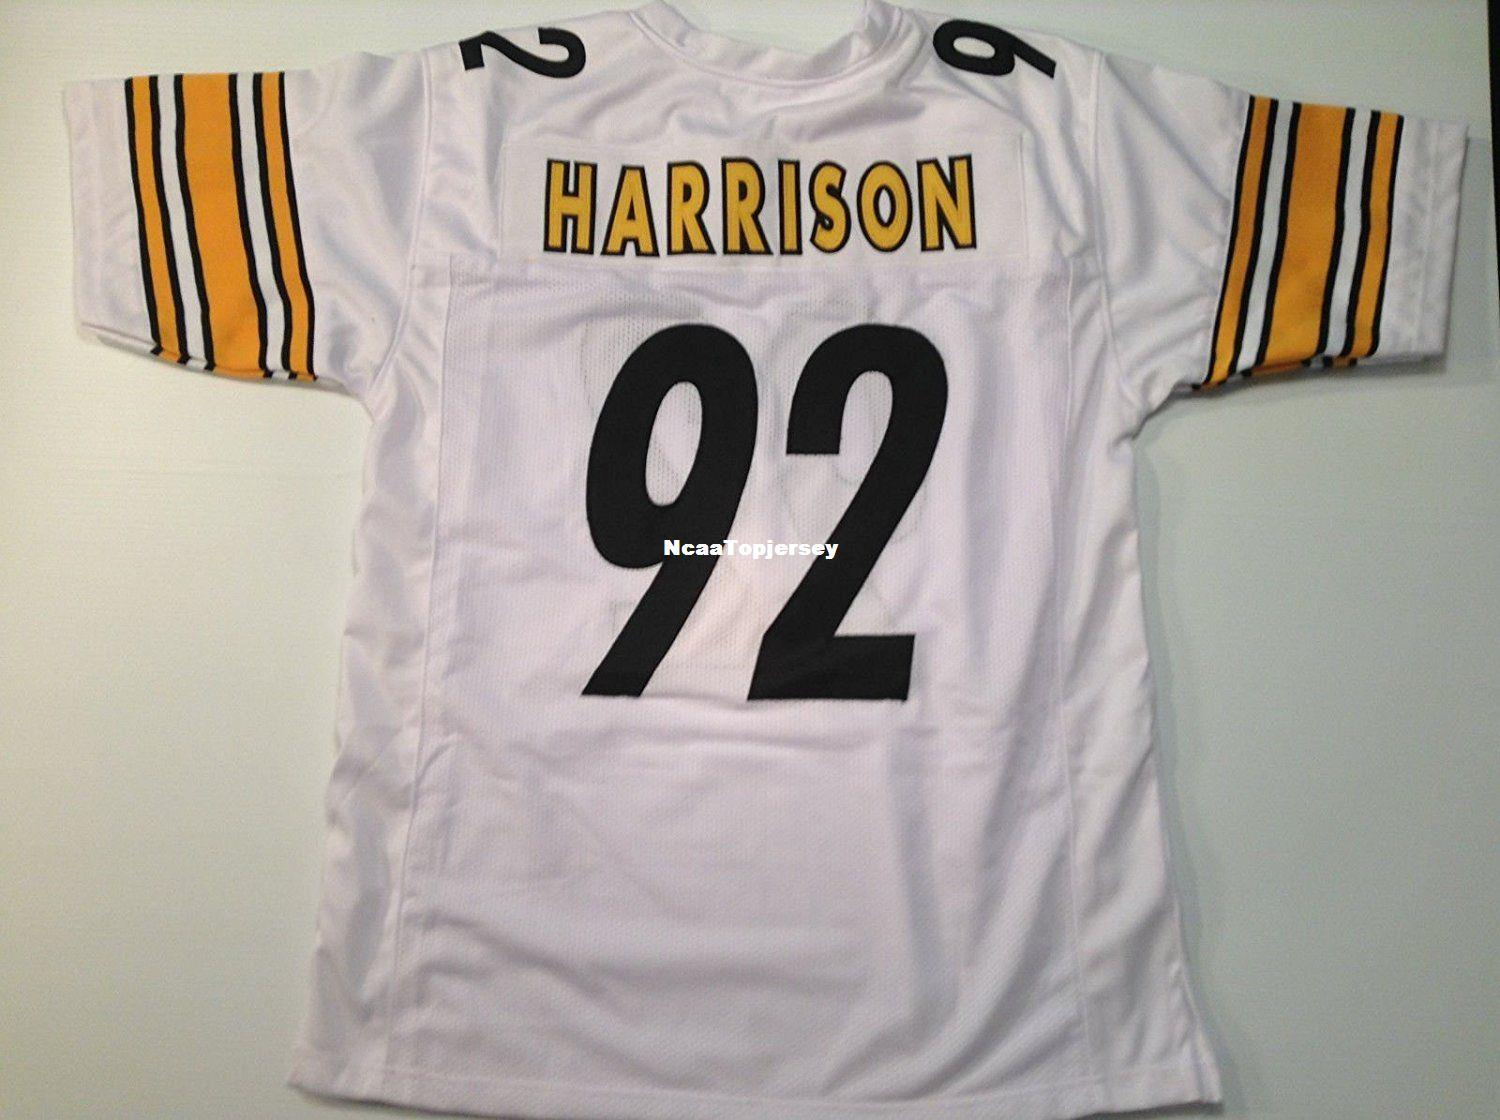 james harrison white jersey